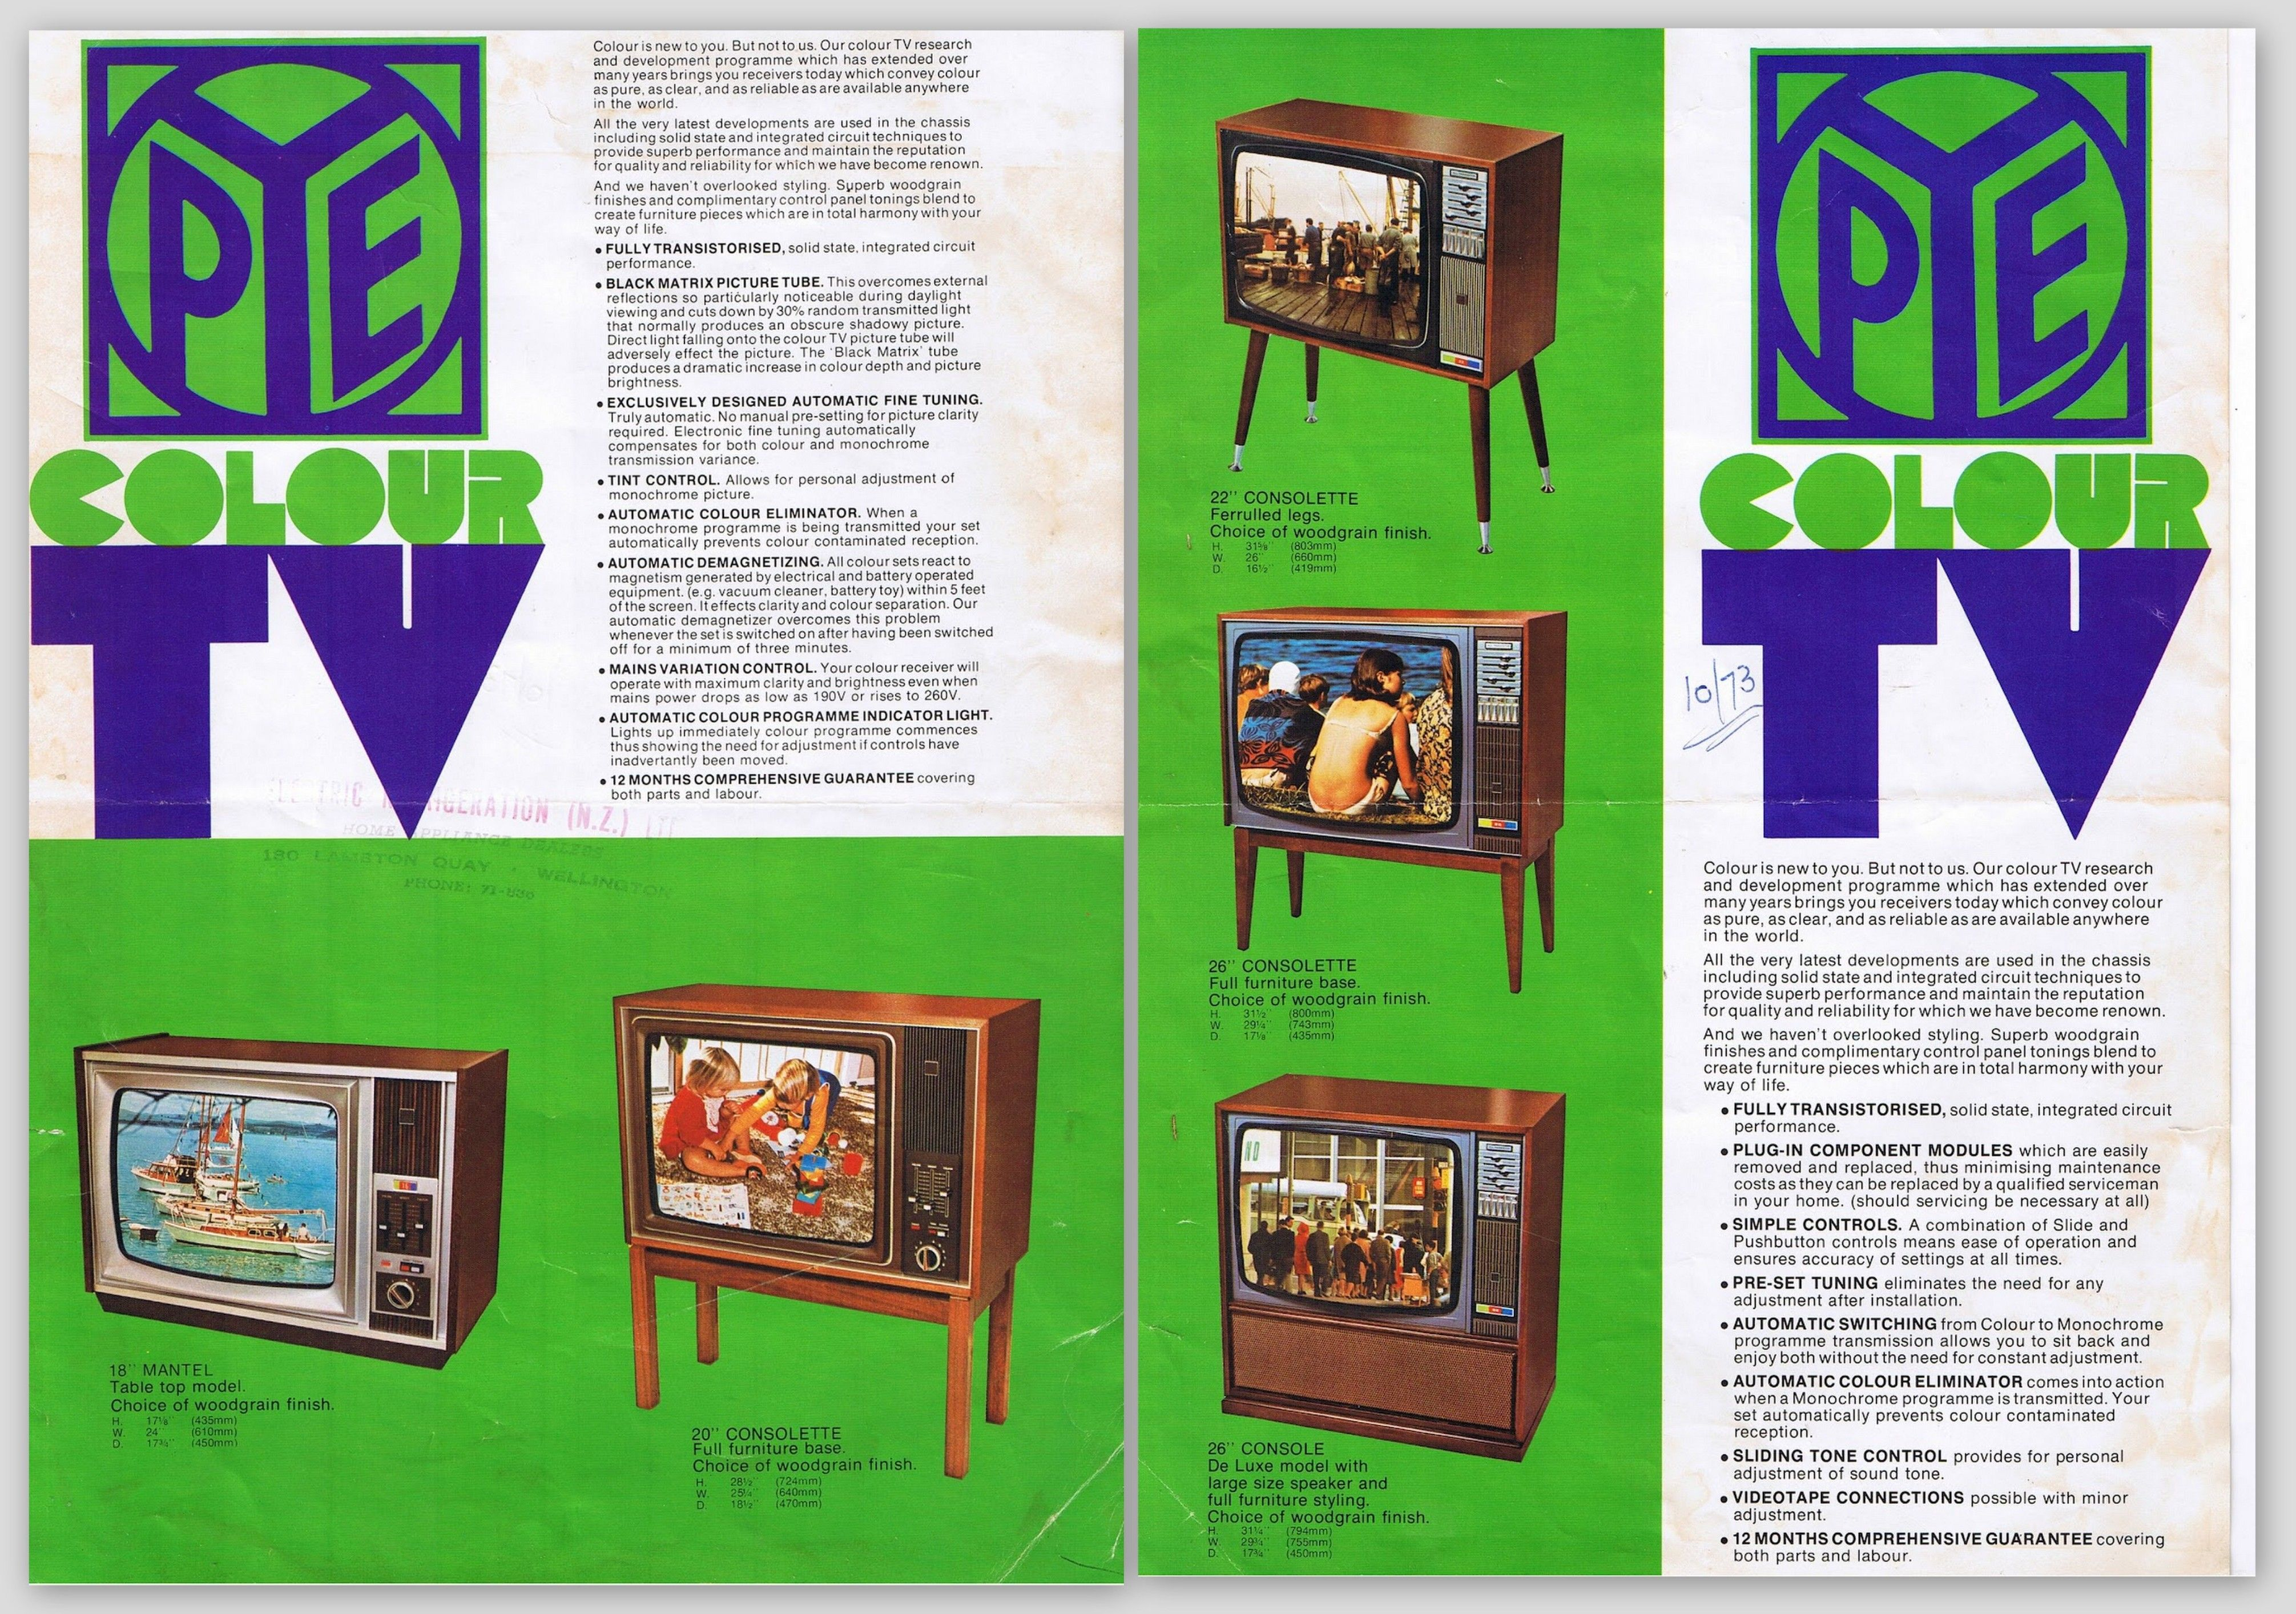 Pye Colour TV 1973 Brochure Just to note with the Pye brochure shows the re-badged Philips K9 sets and thankfully someone has written a date of 10/1973 on it. The two Pye sets on the first side are the early CT101 chassis, now virtually extinct.